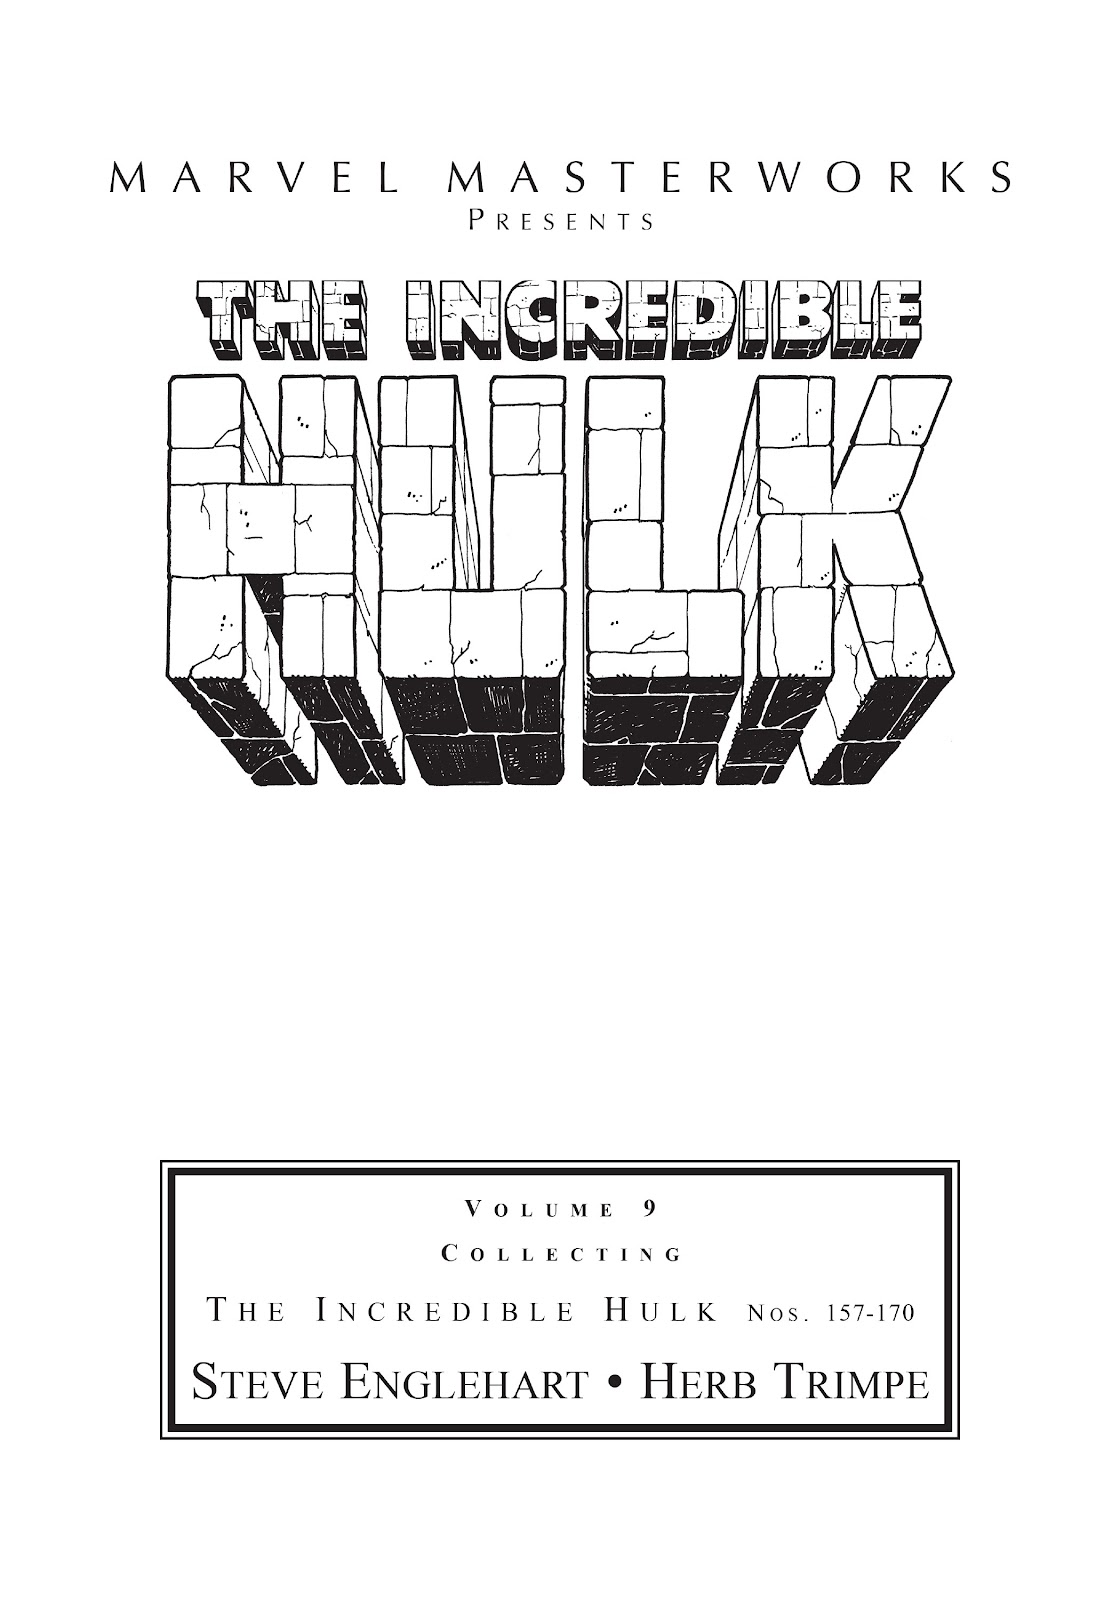 Read online Marvel Masterworks: The Incredible Hulk comic -  Issue # TPB 9 (Part 1) - 2